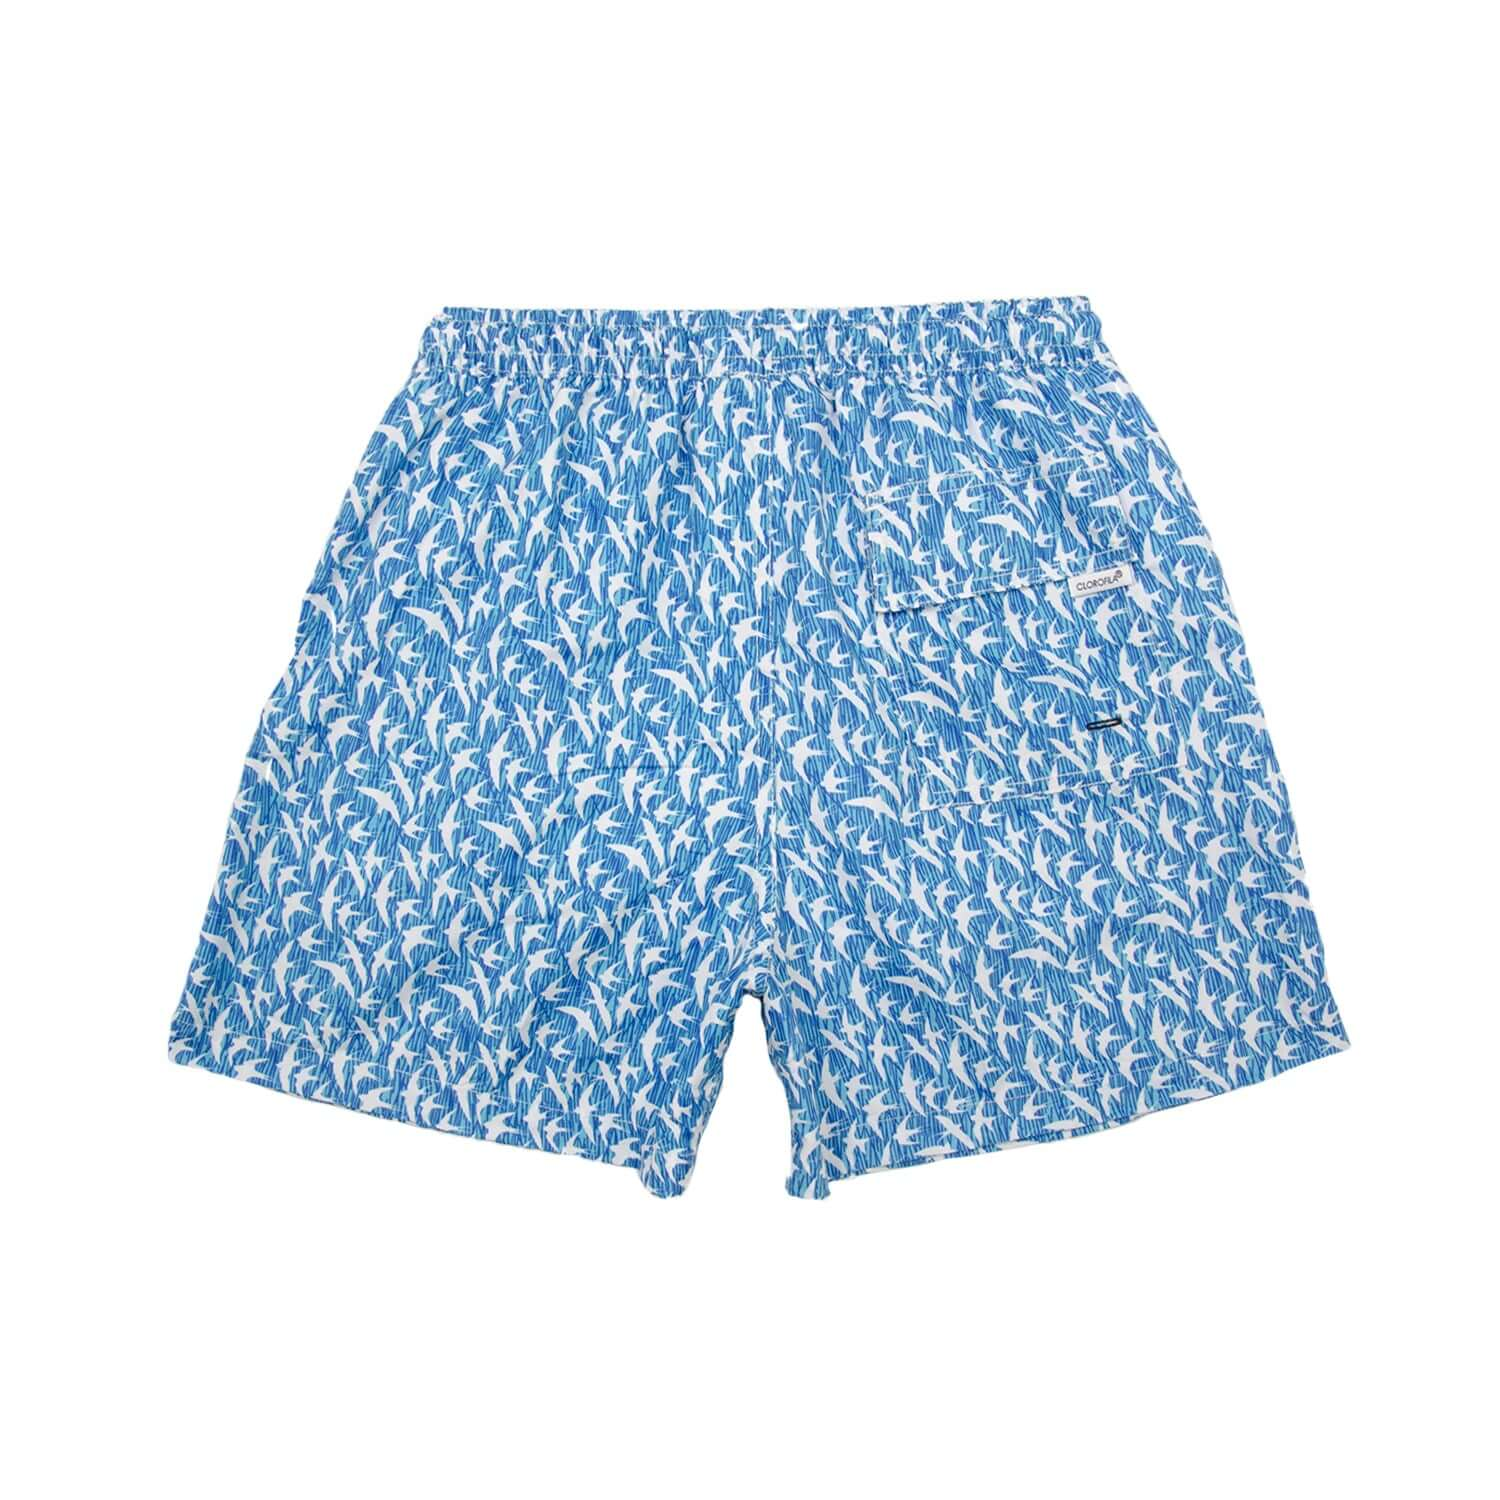 SEAGULL BLUE KIDS - Clorofila Sea Wear